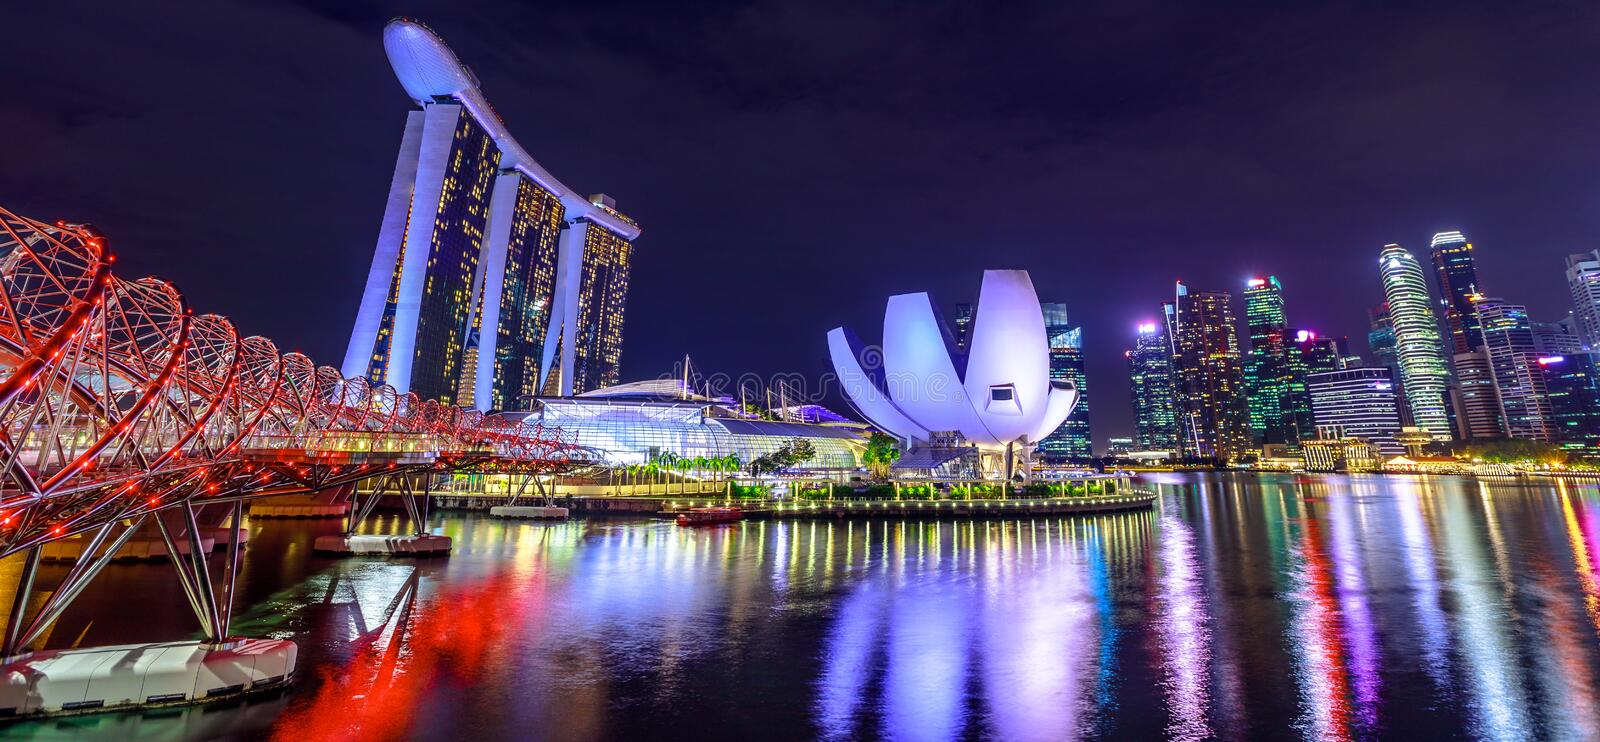 Singapore skyline night. Panorama of Marina bay buildings and skyscrapers of downtown reflected in the Harbor. Singapore architecture skyline by night. Night stock images